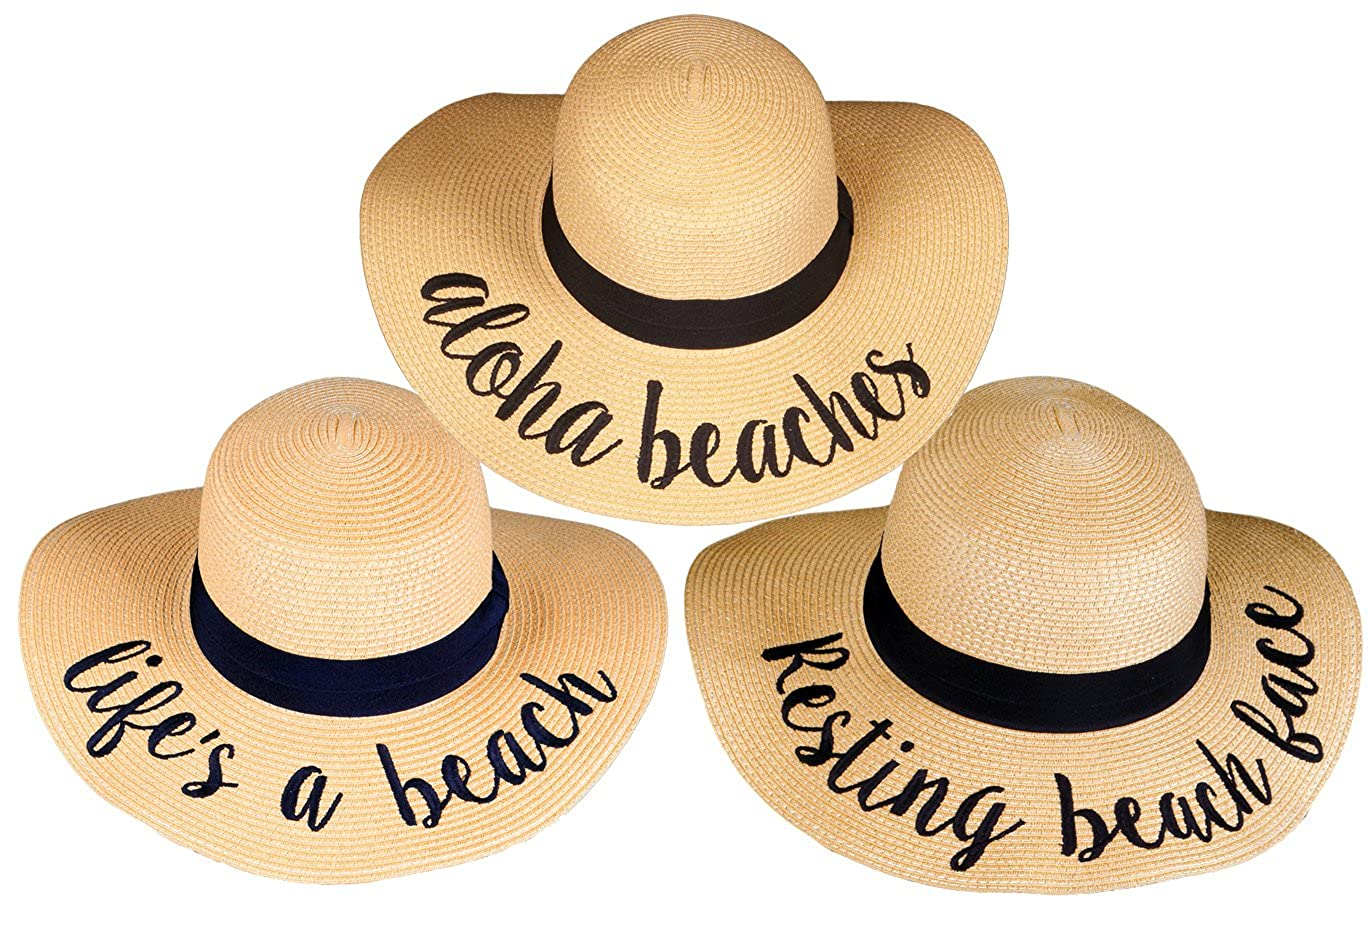 3 Sun Hats  Aloha Beaches, Lifes a Beach, Resting Beach Face Funky Junque Women's Bold Cursive Embroidered Adjustable Beach Floppy Sun Hat